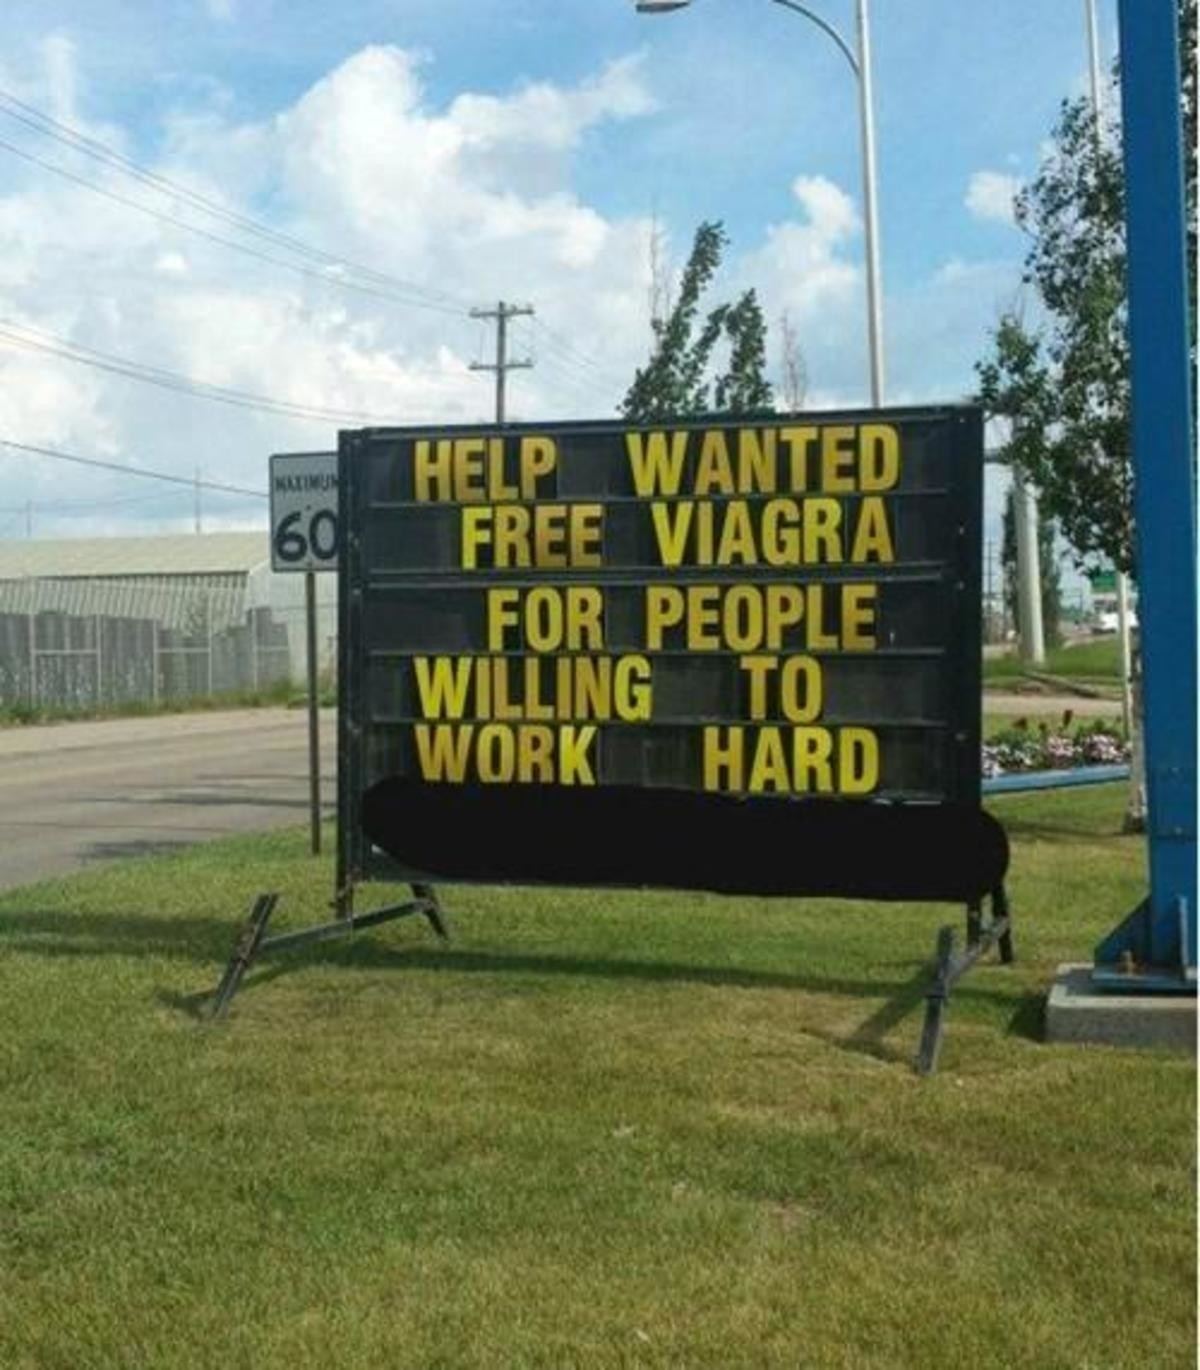 help wanted. .. sigh alright I'll do it. Help free for willing work Wanted viagra people to hard